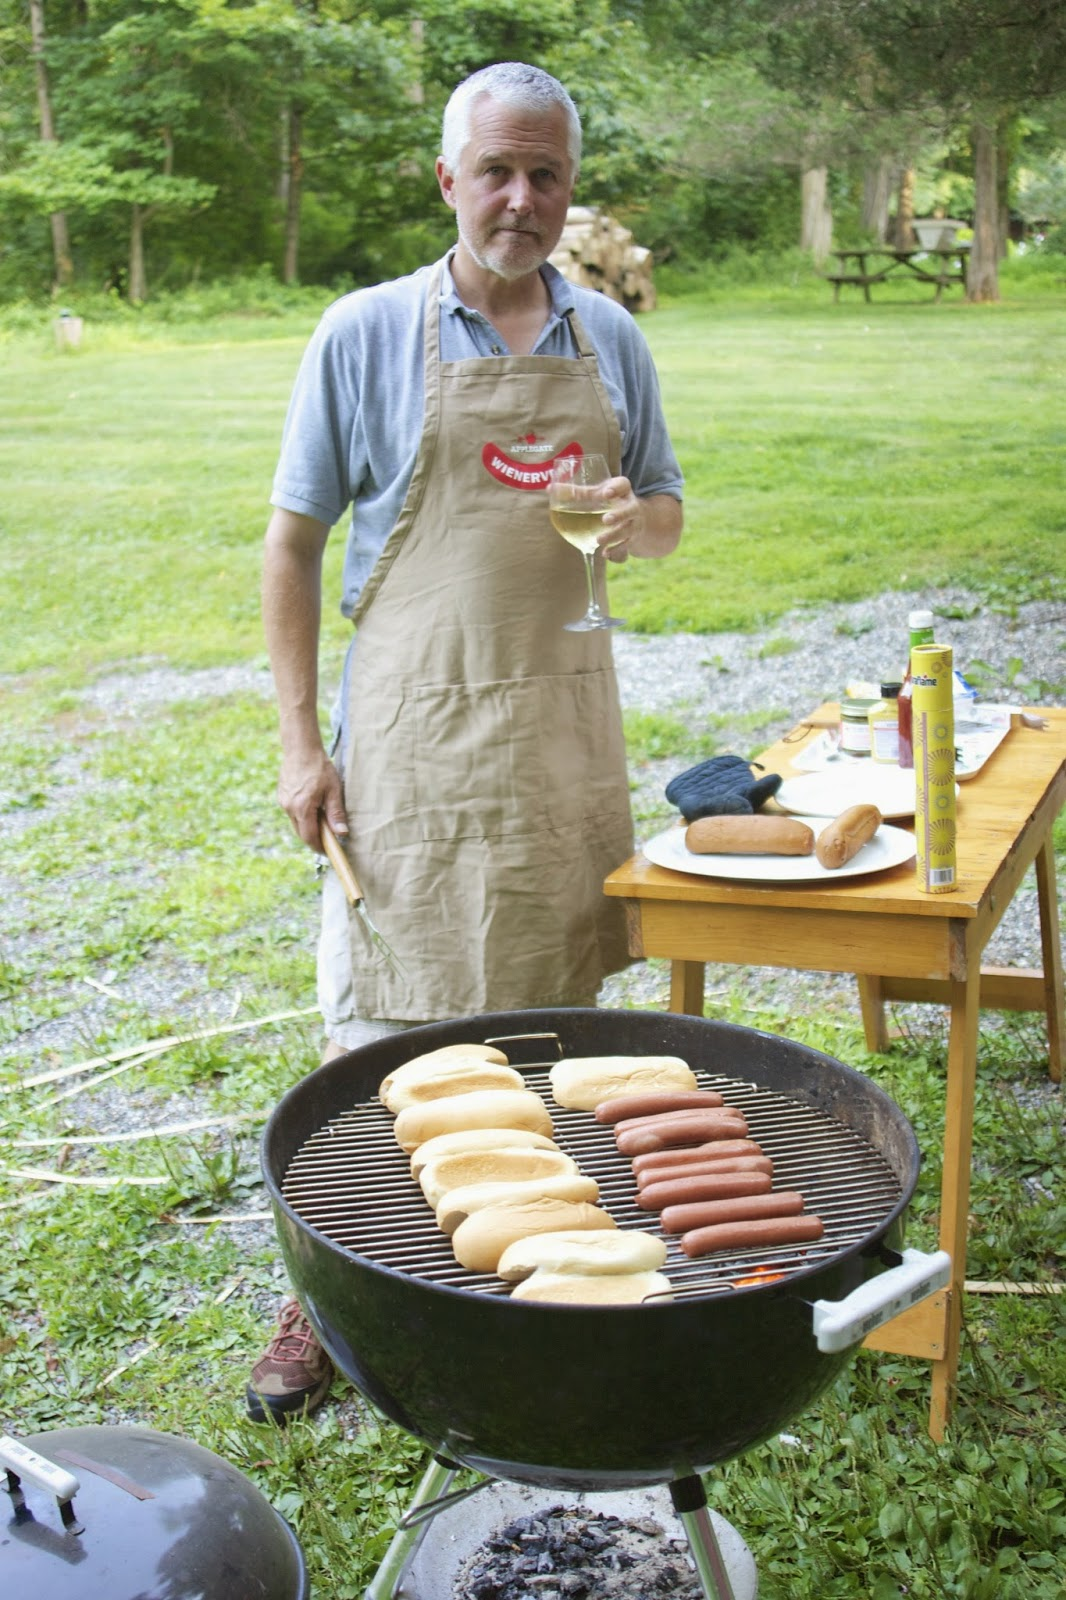 grilling hot dogs: simplelivingeating.com